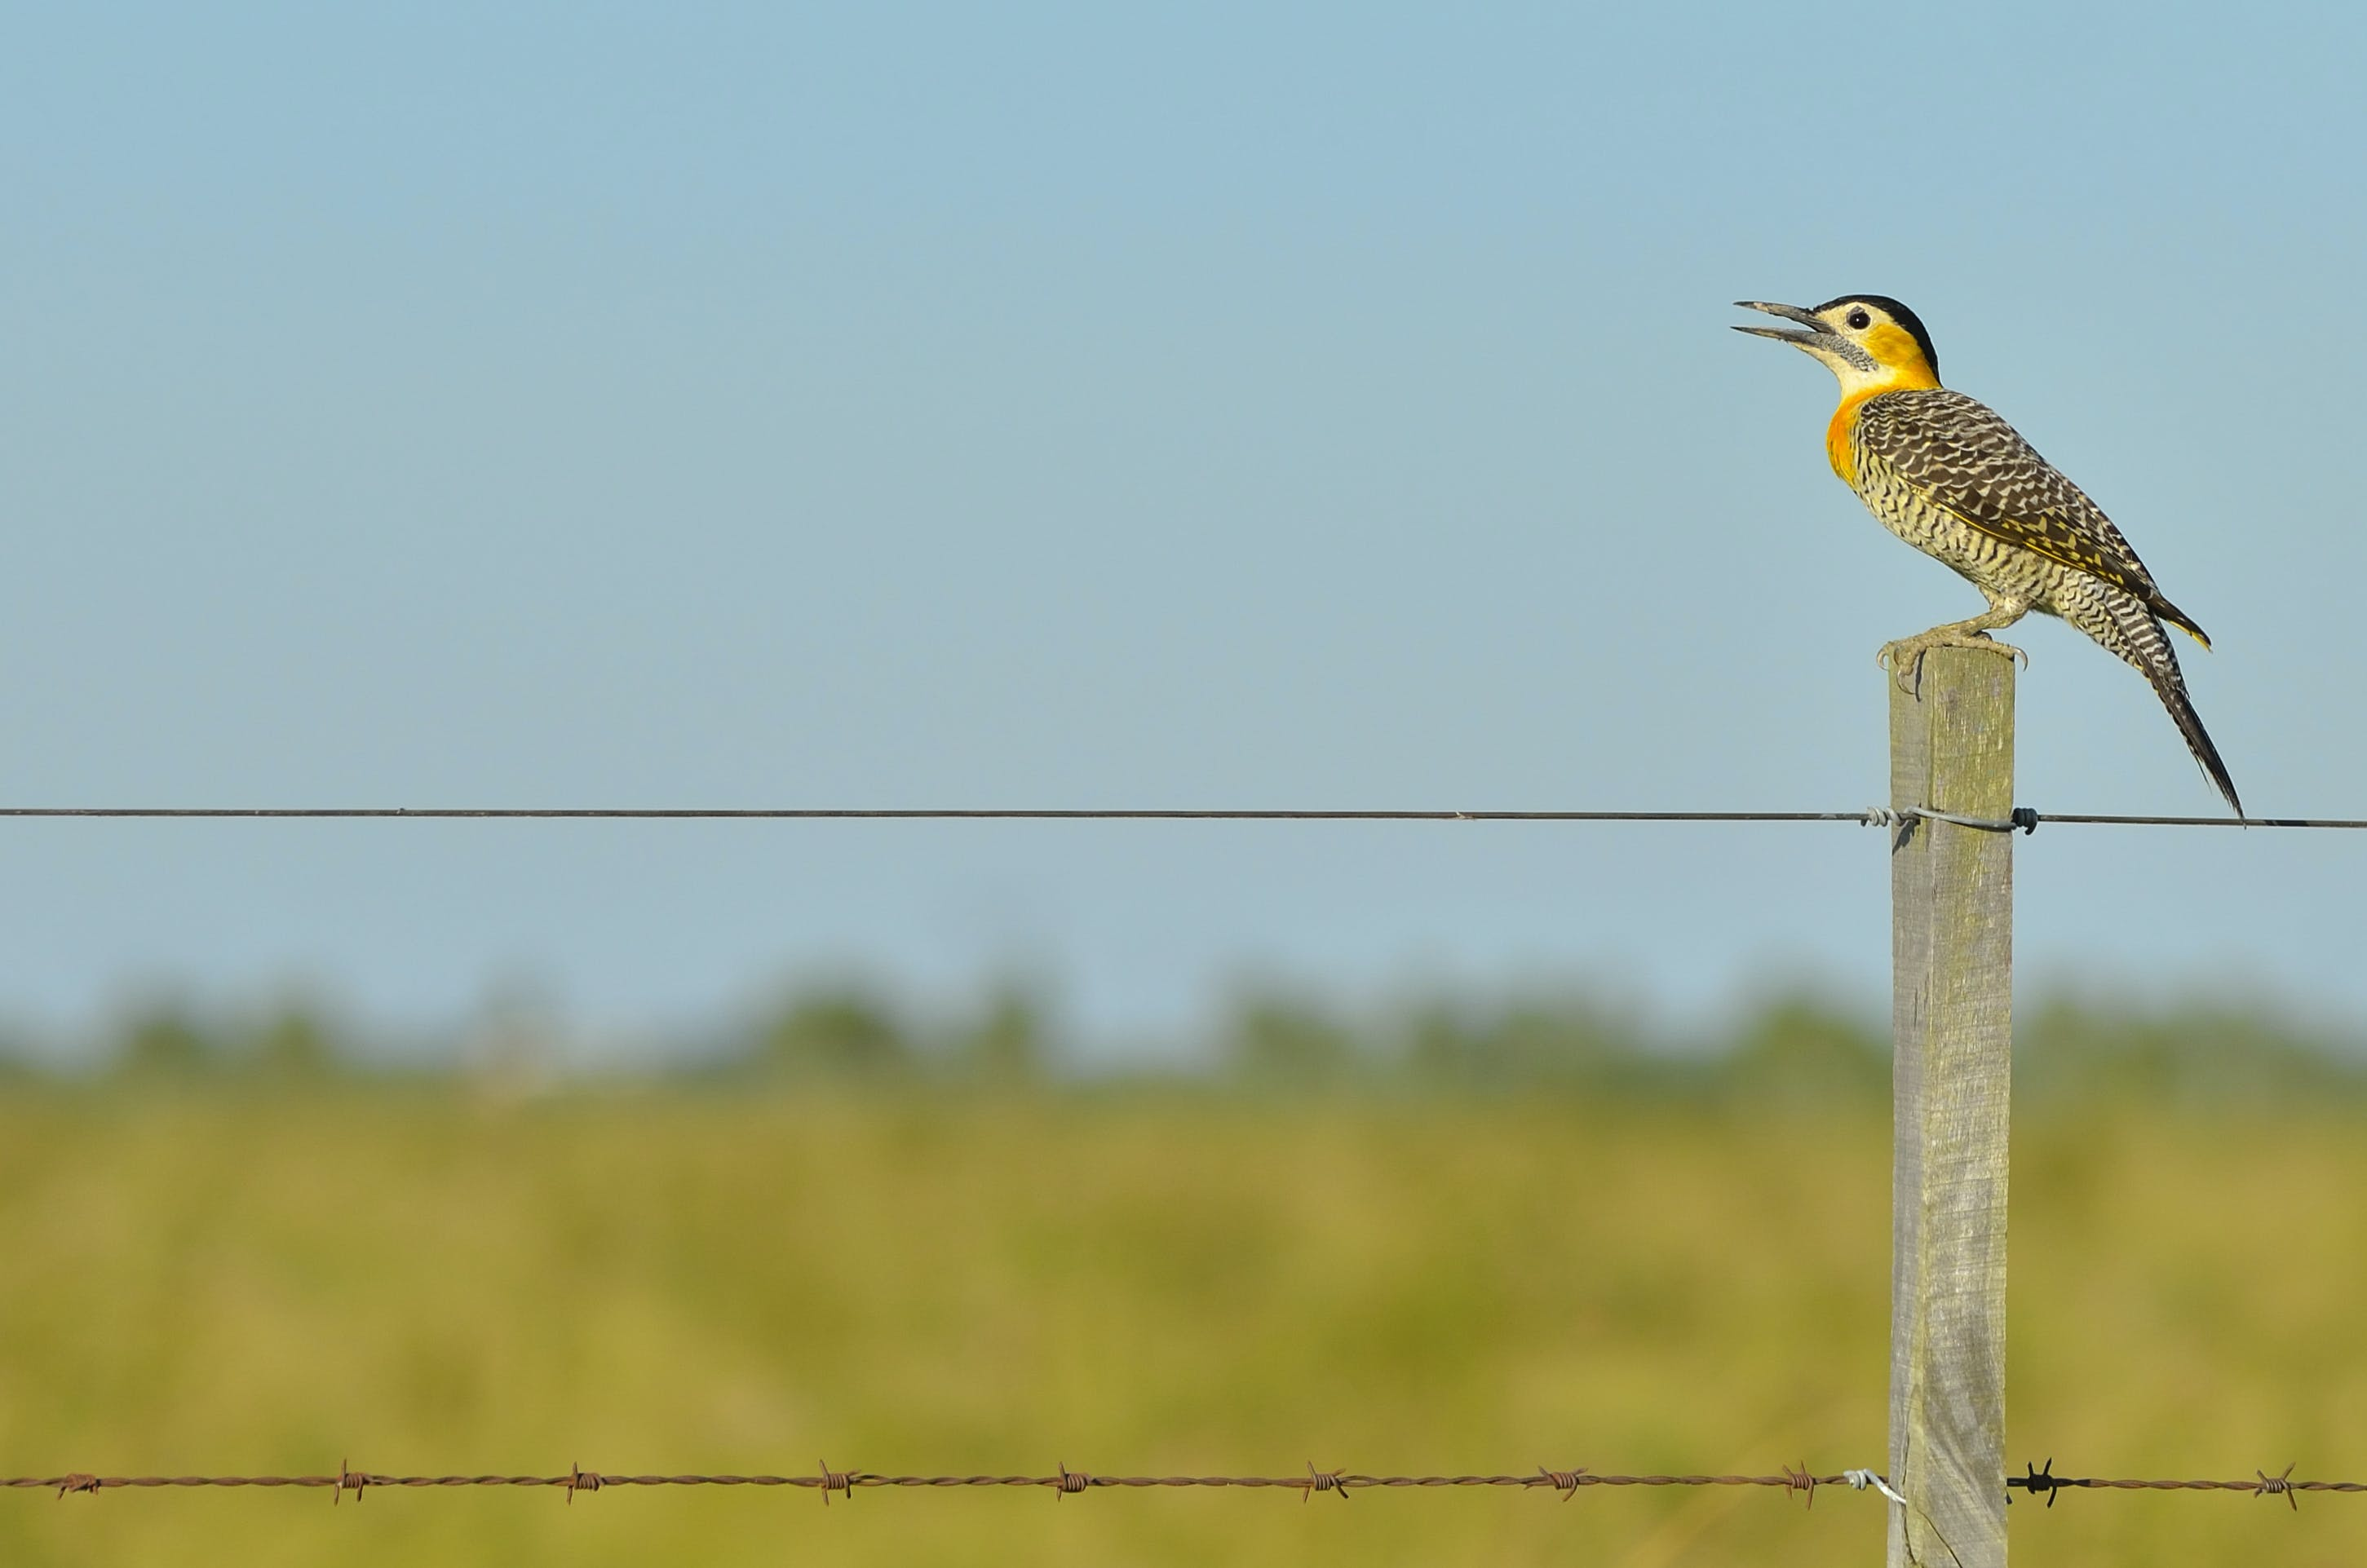 Black White Yellow and Gray Bird Standing on Brown Wooden Fence during Daytime